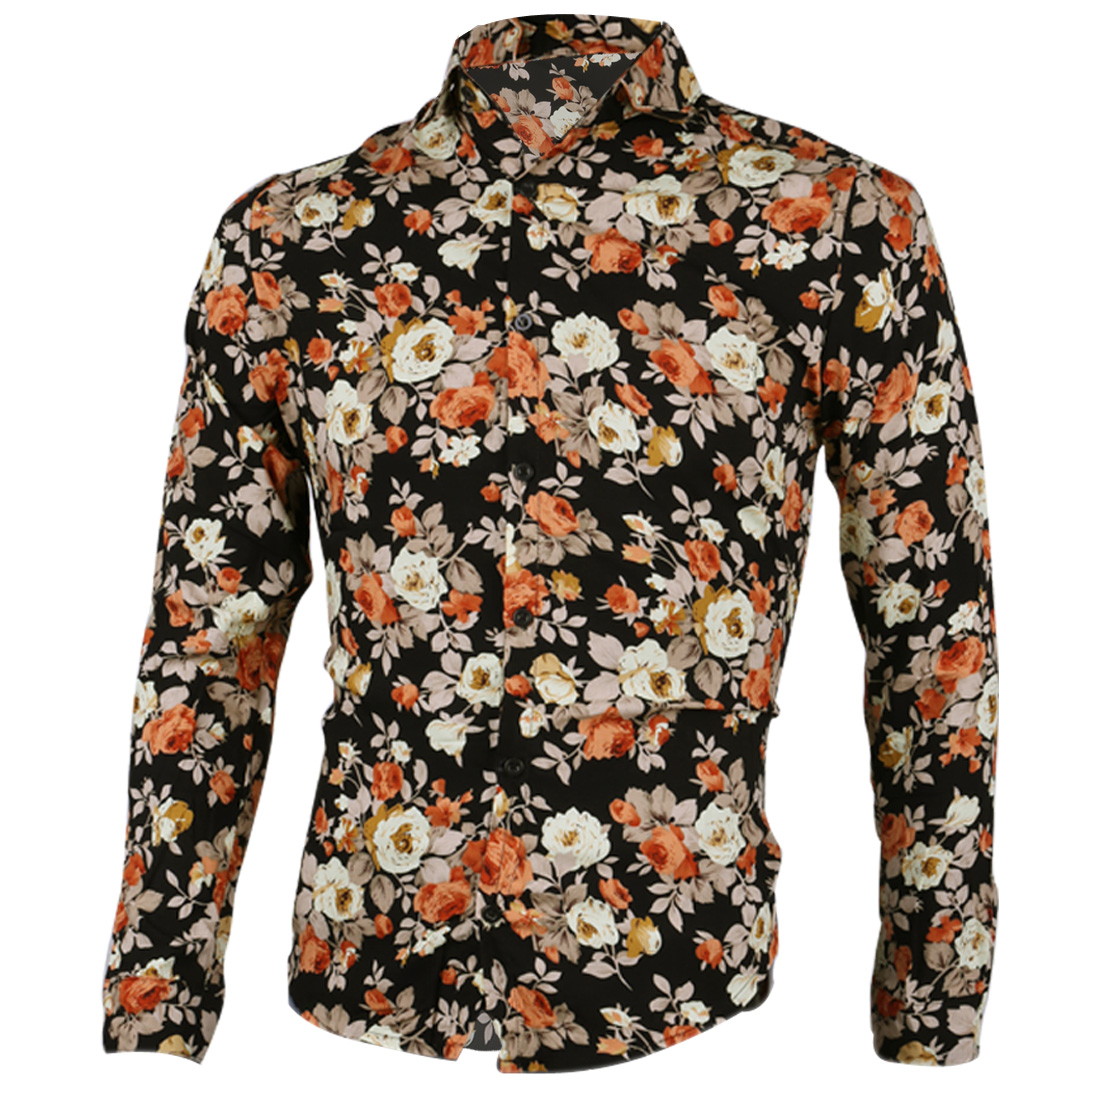 Men Point Collar Long Sleeves Floral Prints Button Up Shirt Multi-Color S